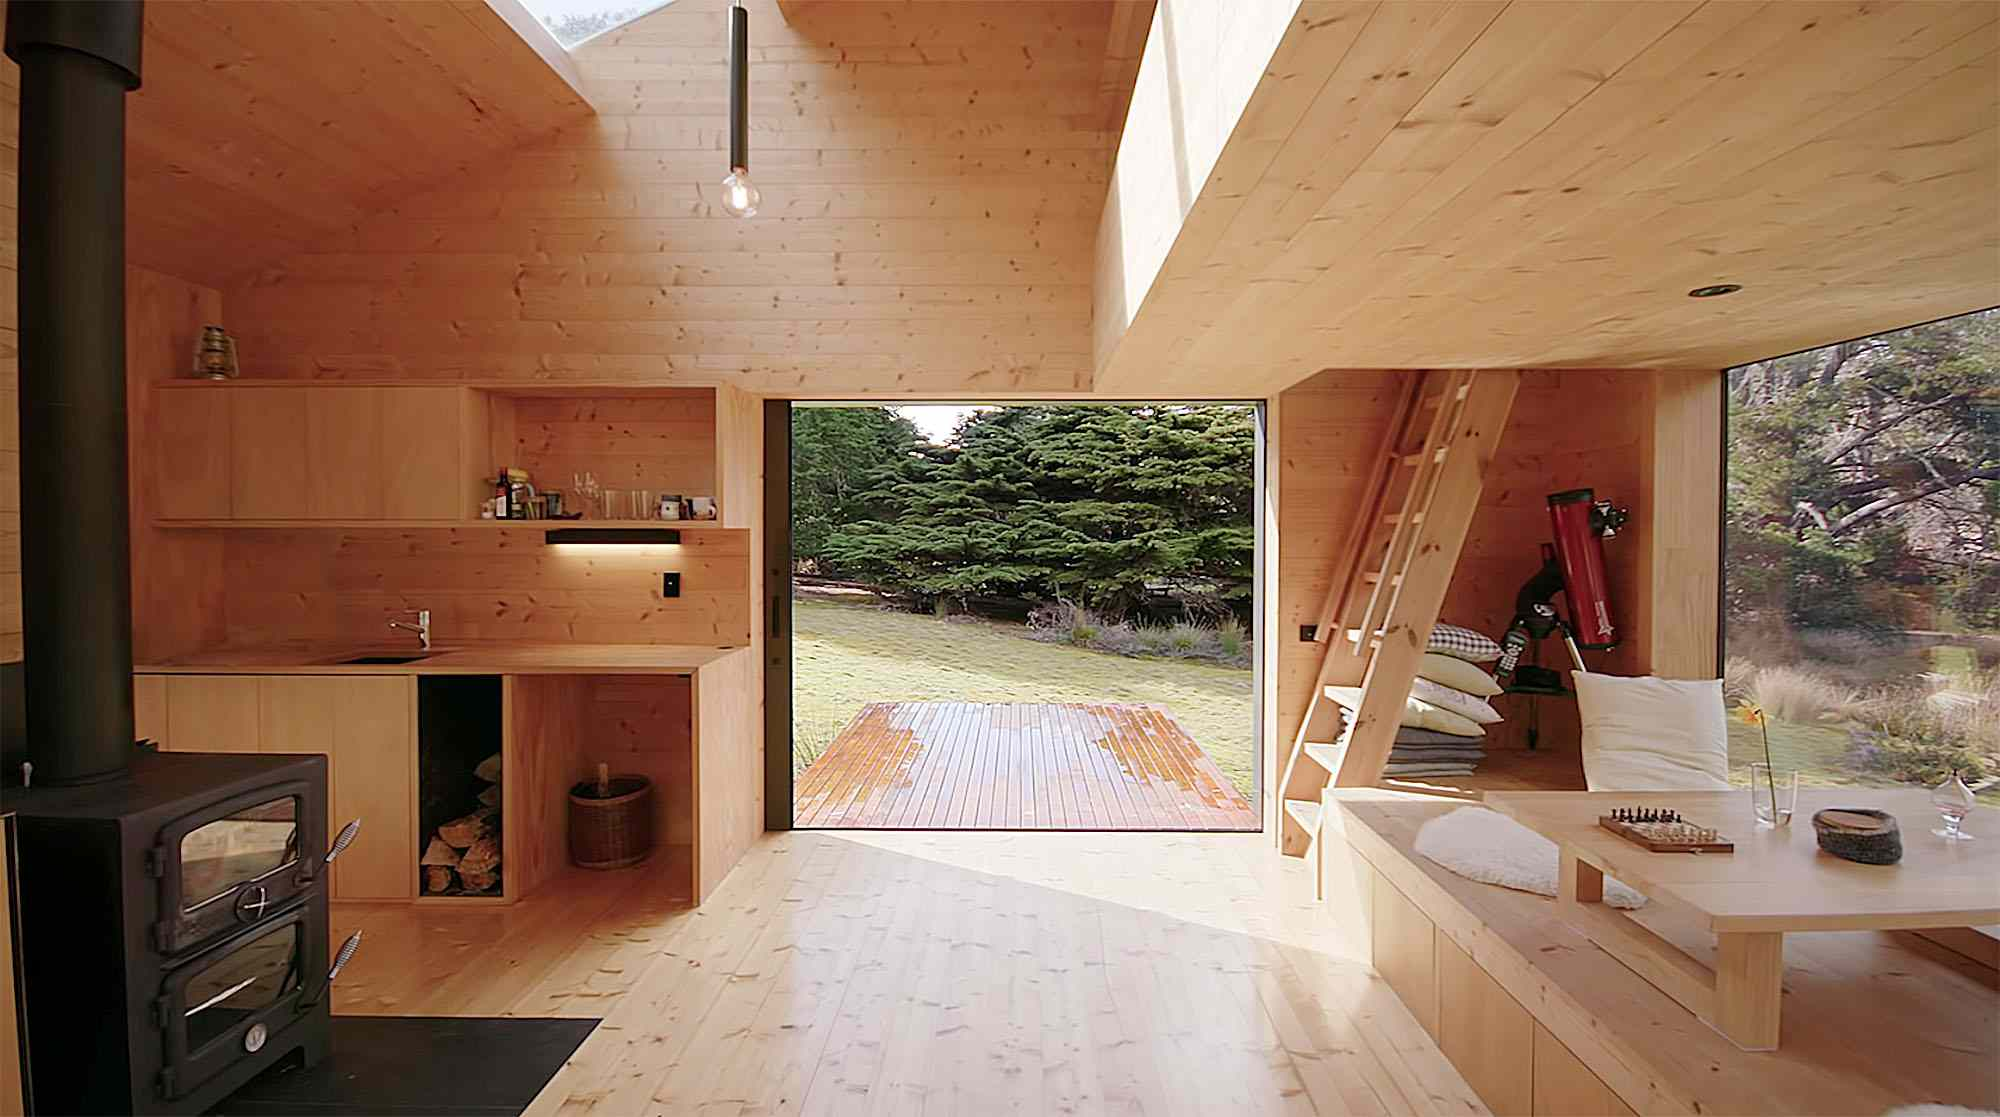 Bruny Island Hideaway by Maguire + Devin view of deck